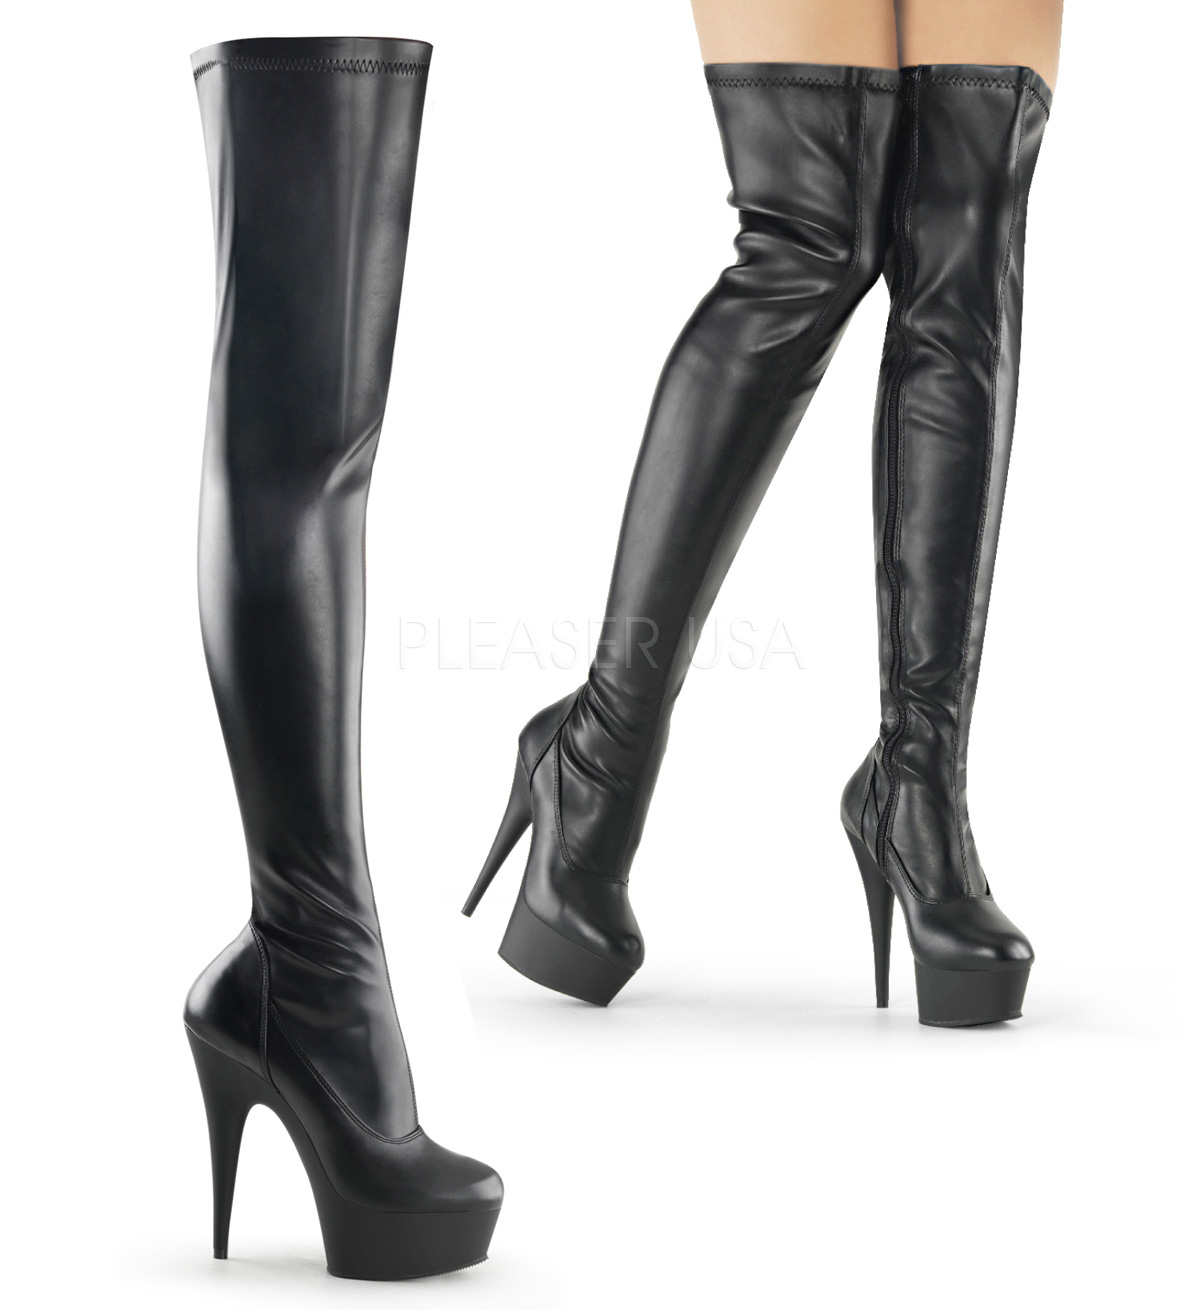 4de1c526f4a0 Pleaser Delight-3000 Exotic Dancer Thigh High Boot